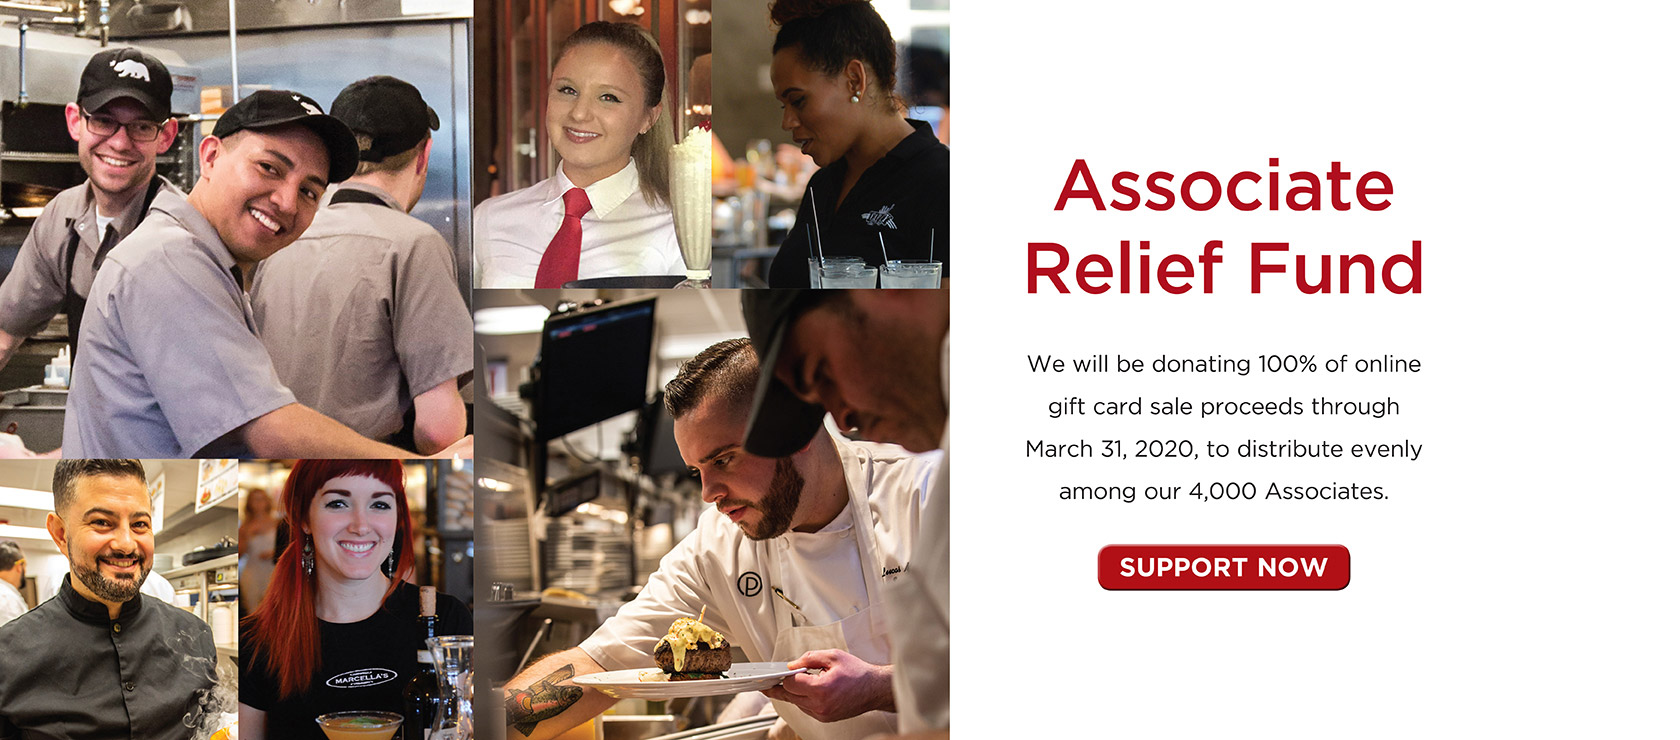 Associate Relief Fund. We will b donating 00% of online gift card sale proceeds through March 31, 2020 to distribute evenly among our 4,000 Associates. Support Now.